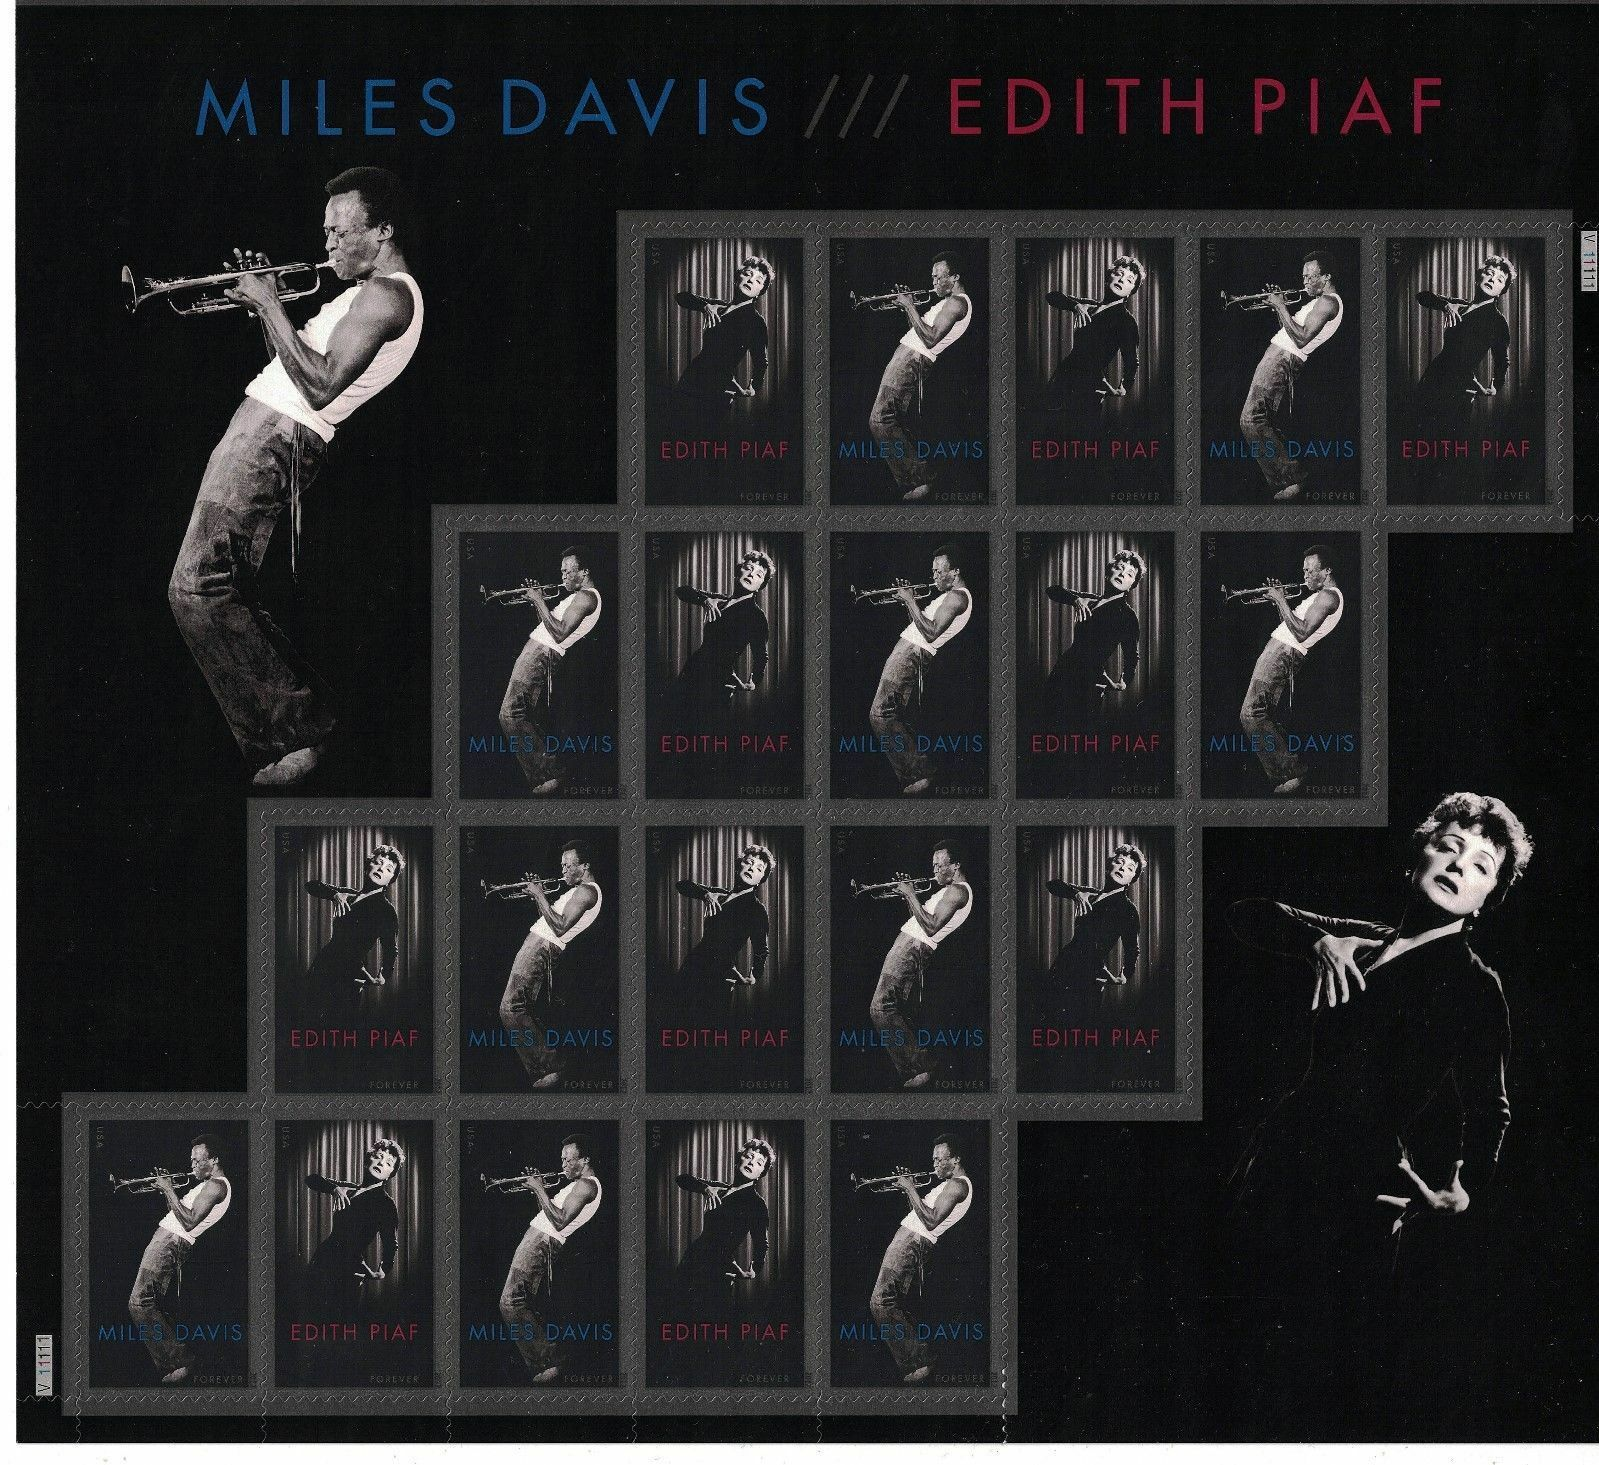 2012 45c Miles Davis/Edith Piaf, Sheet of 20 Scott 4692